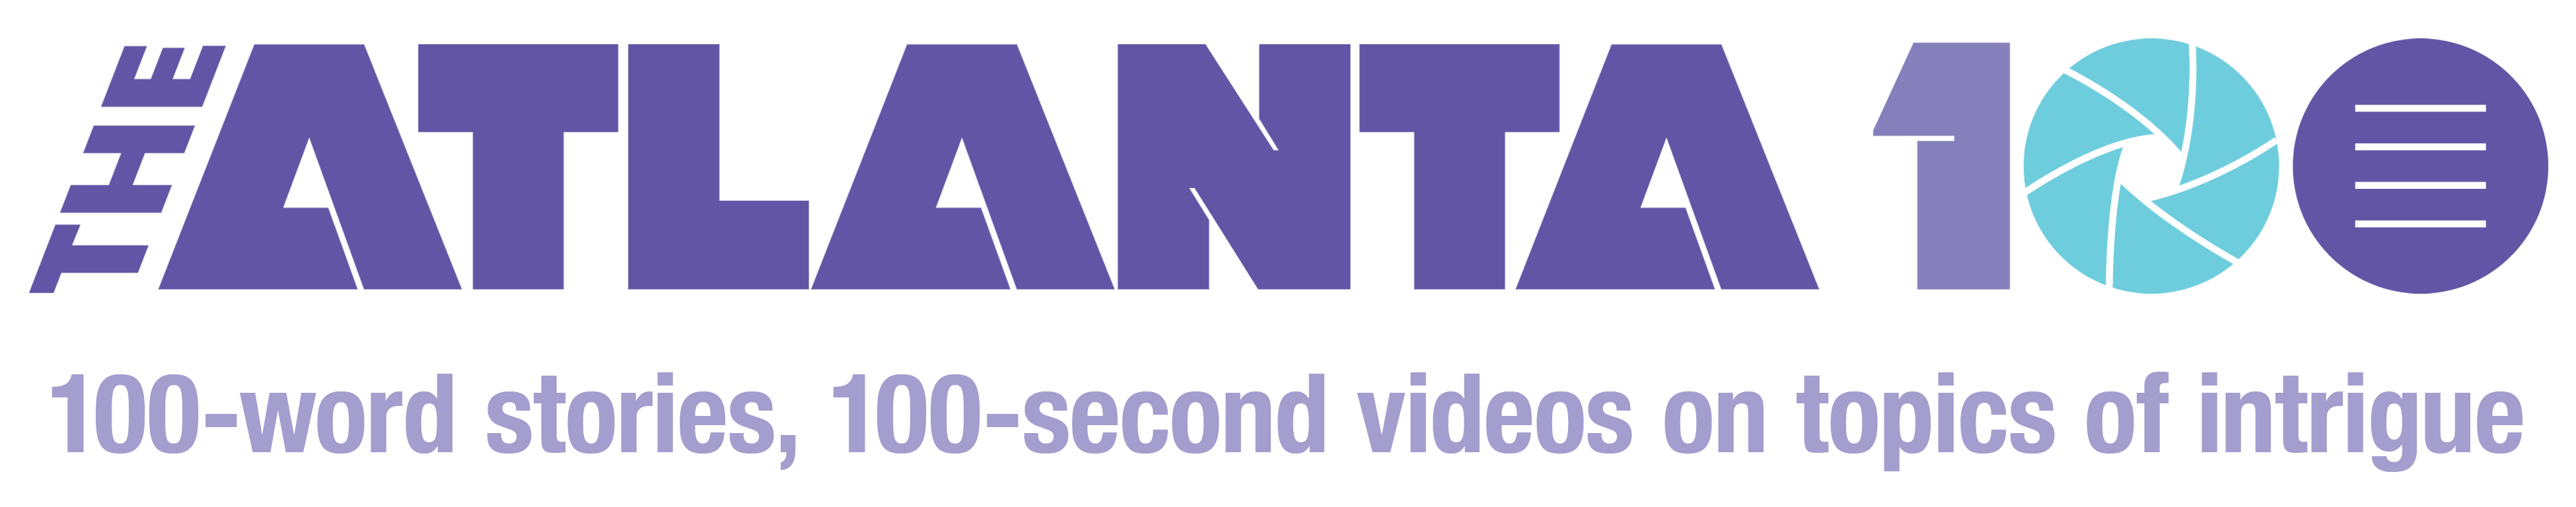 The Atlanta 100 - 100 word stories & 100 second videos on